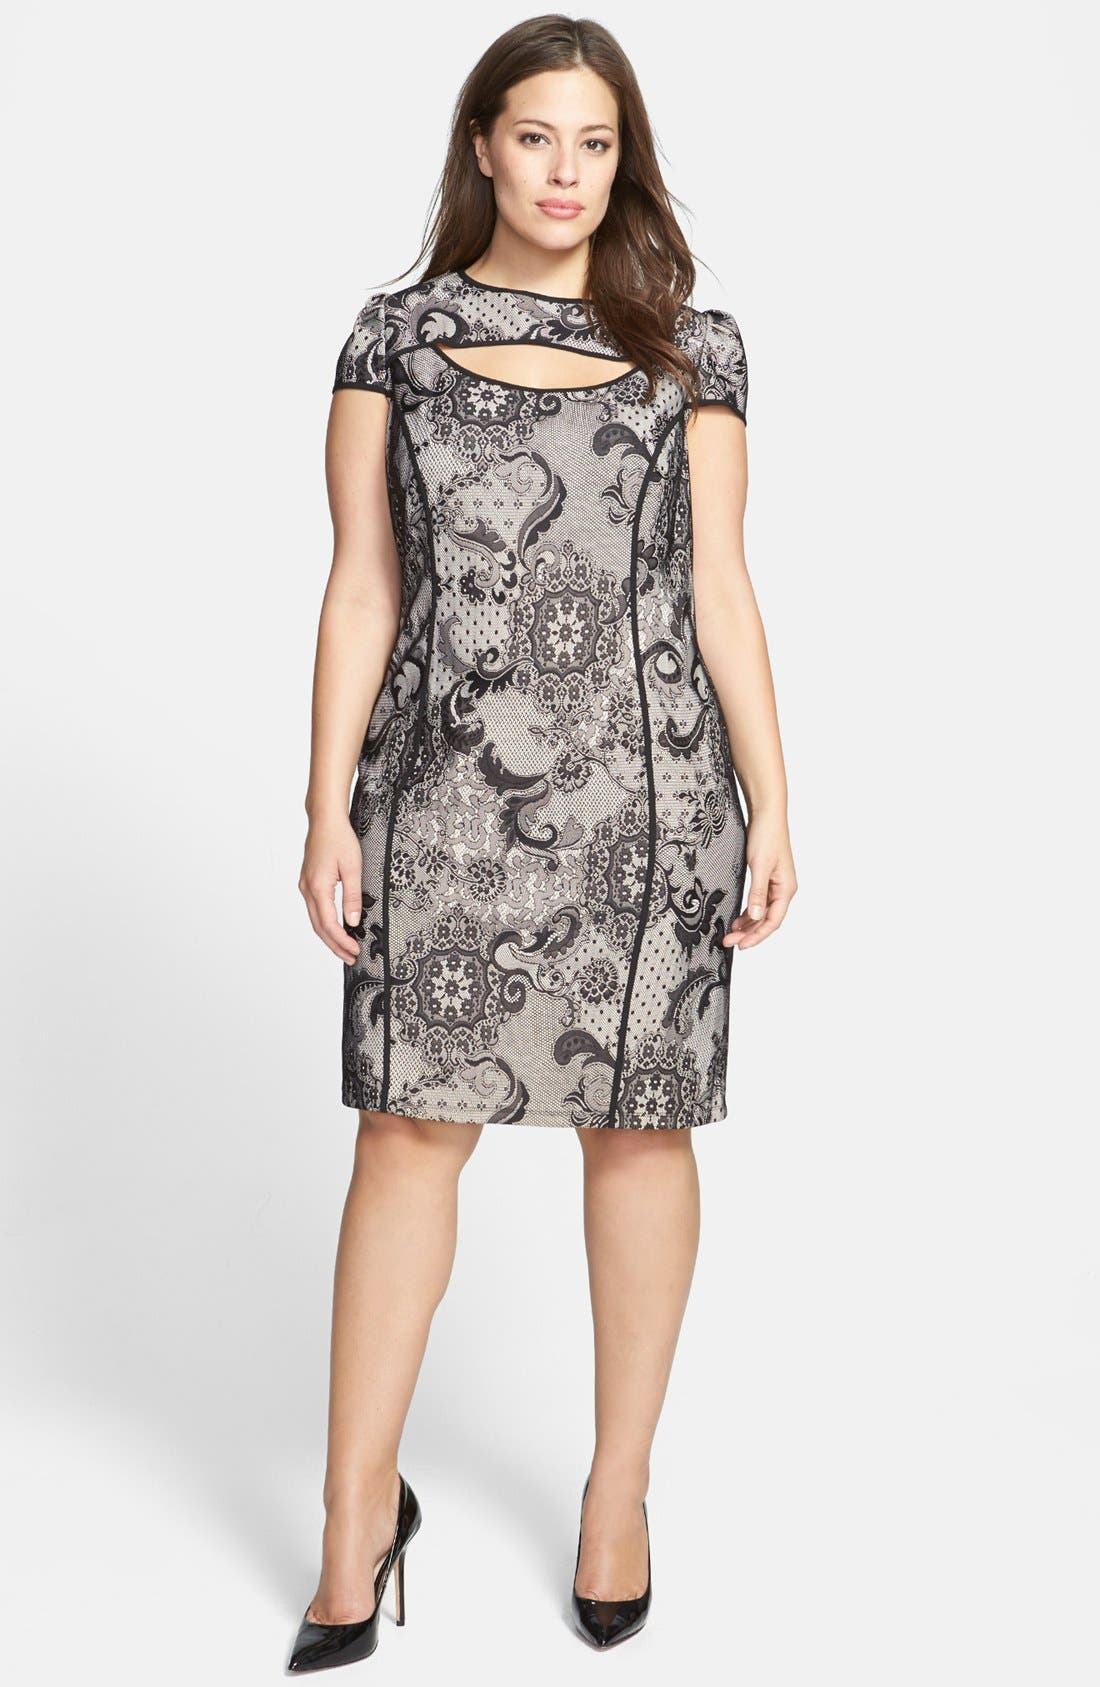 Alternate Image 1 Selected - ABS by Allen Schwartz Cutout Lace Sheath Dress (Plus Size)